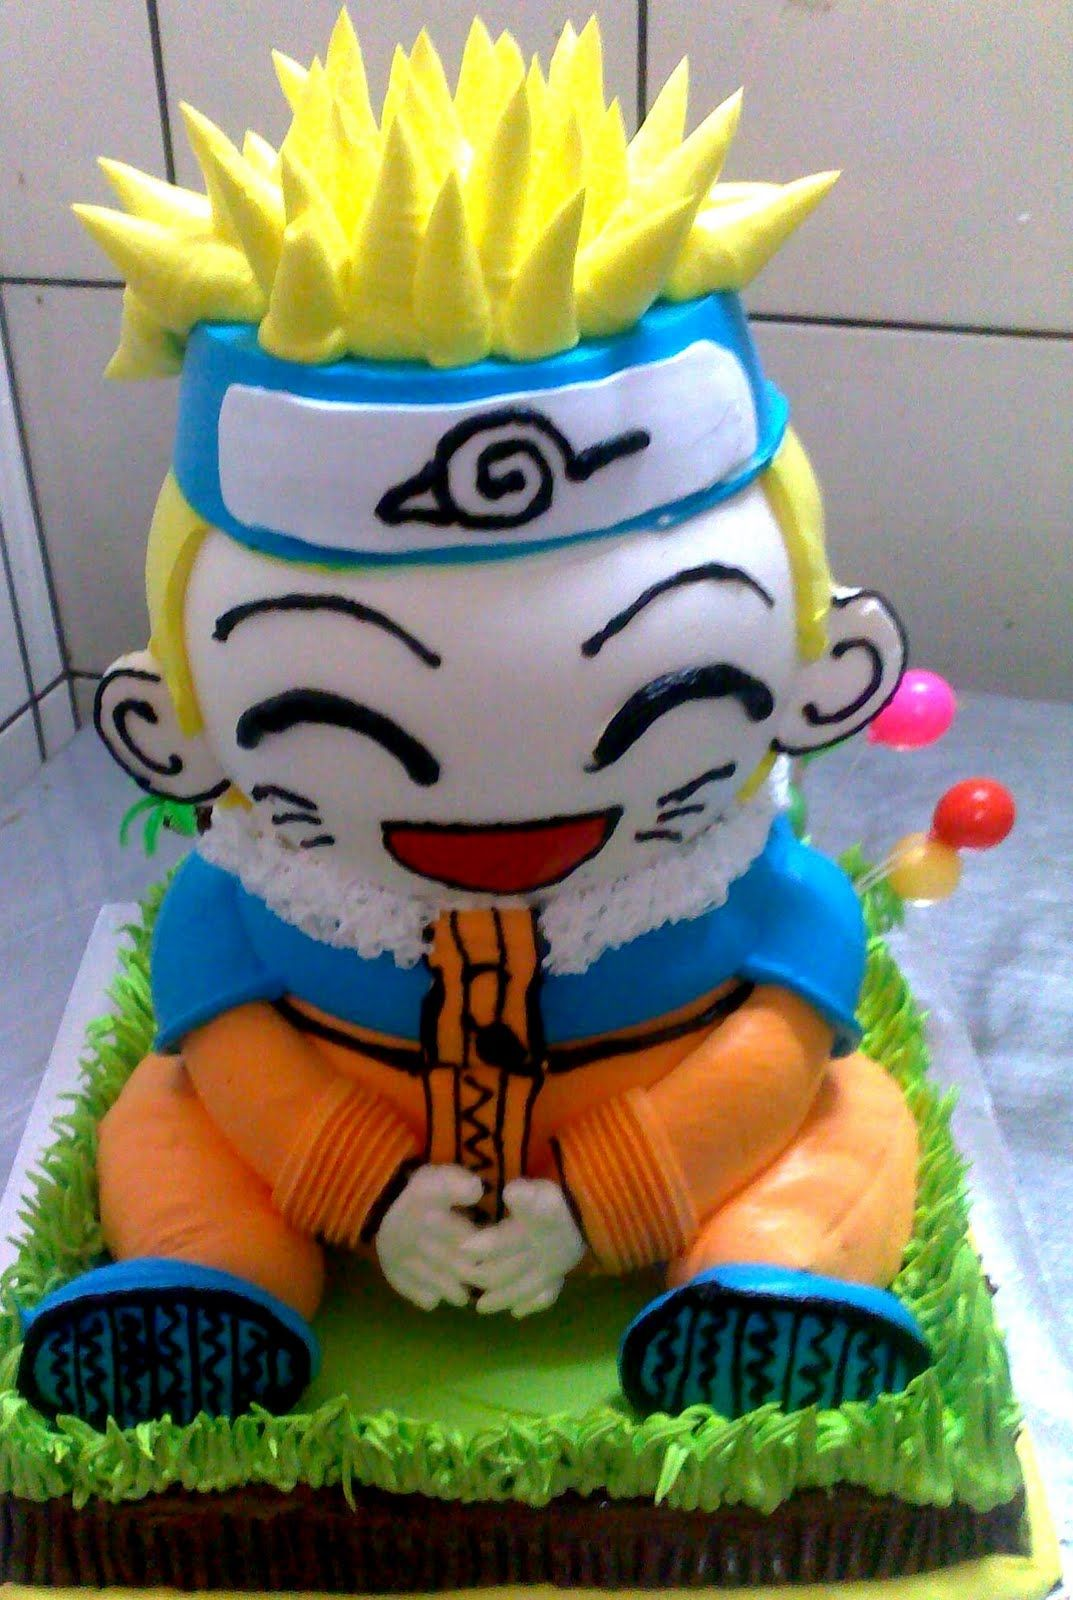 Sensational Uzumaki Naruto 3D Birthday Cake With Images 3D Birthday Cake Personalised Birthday Cards Sponlily Jamesorg